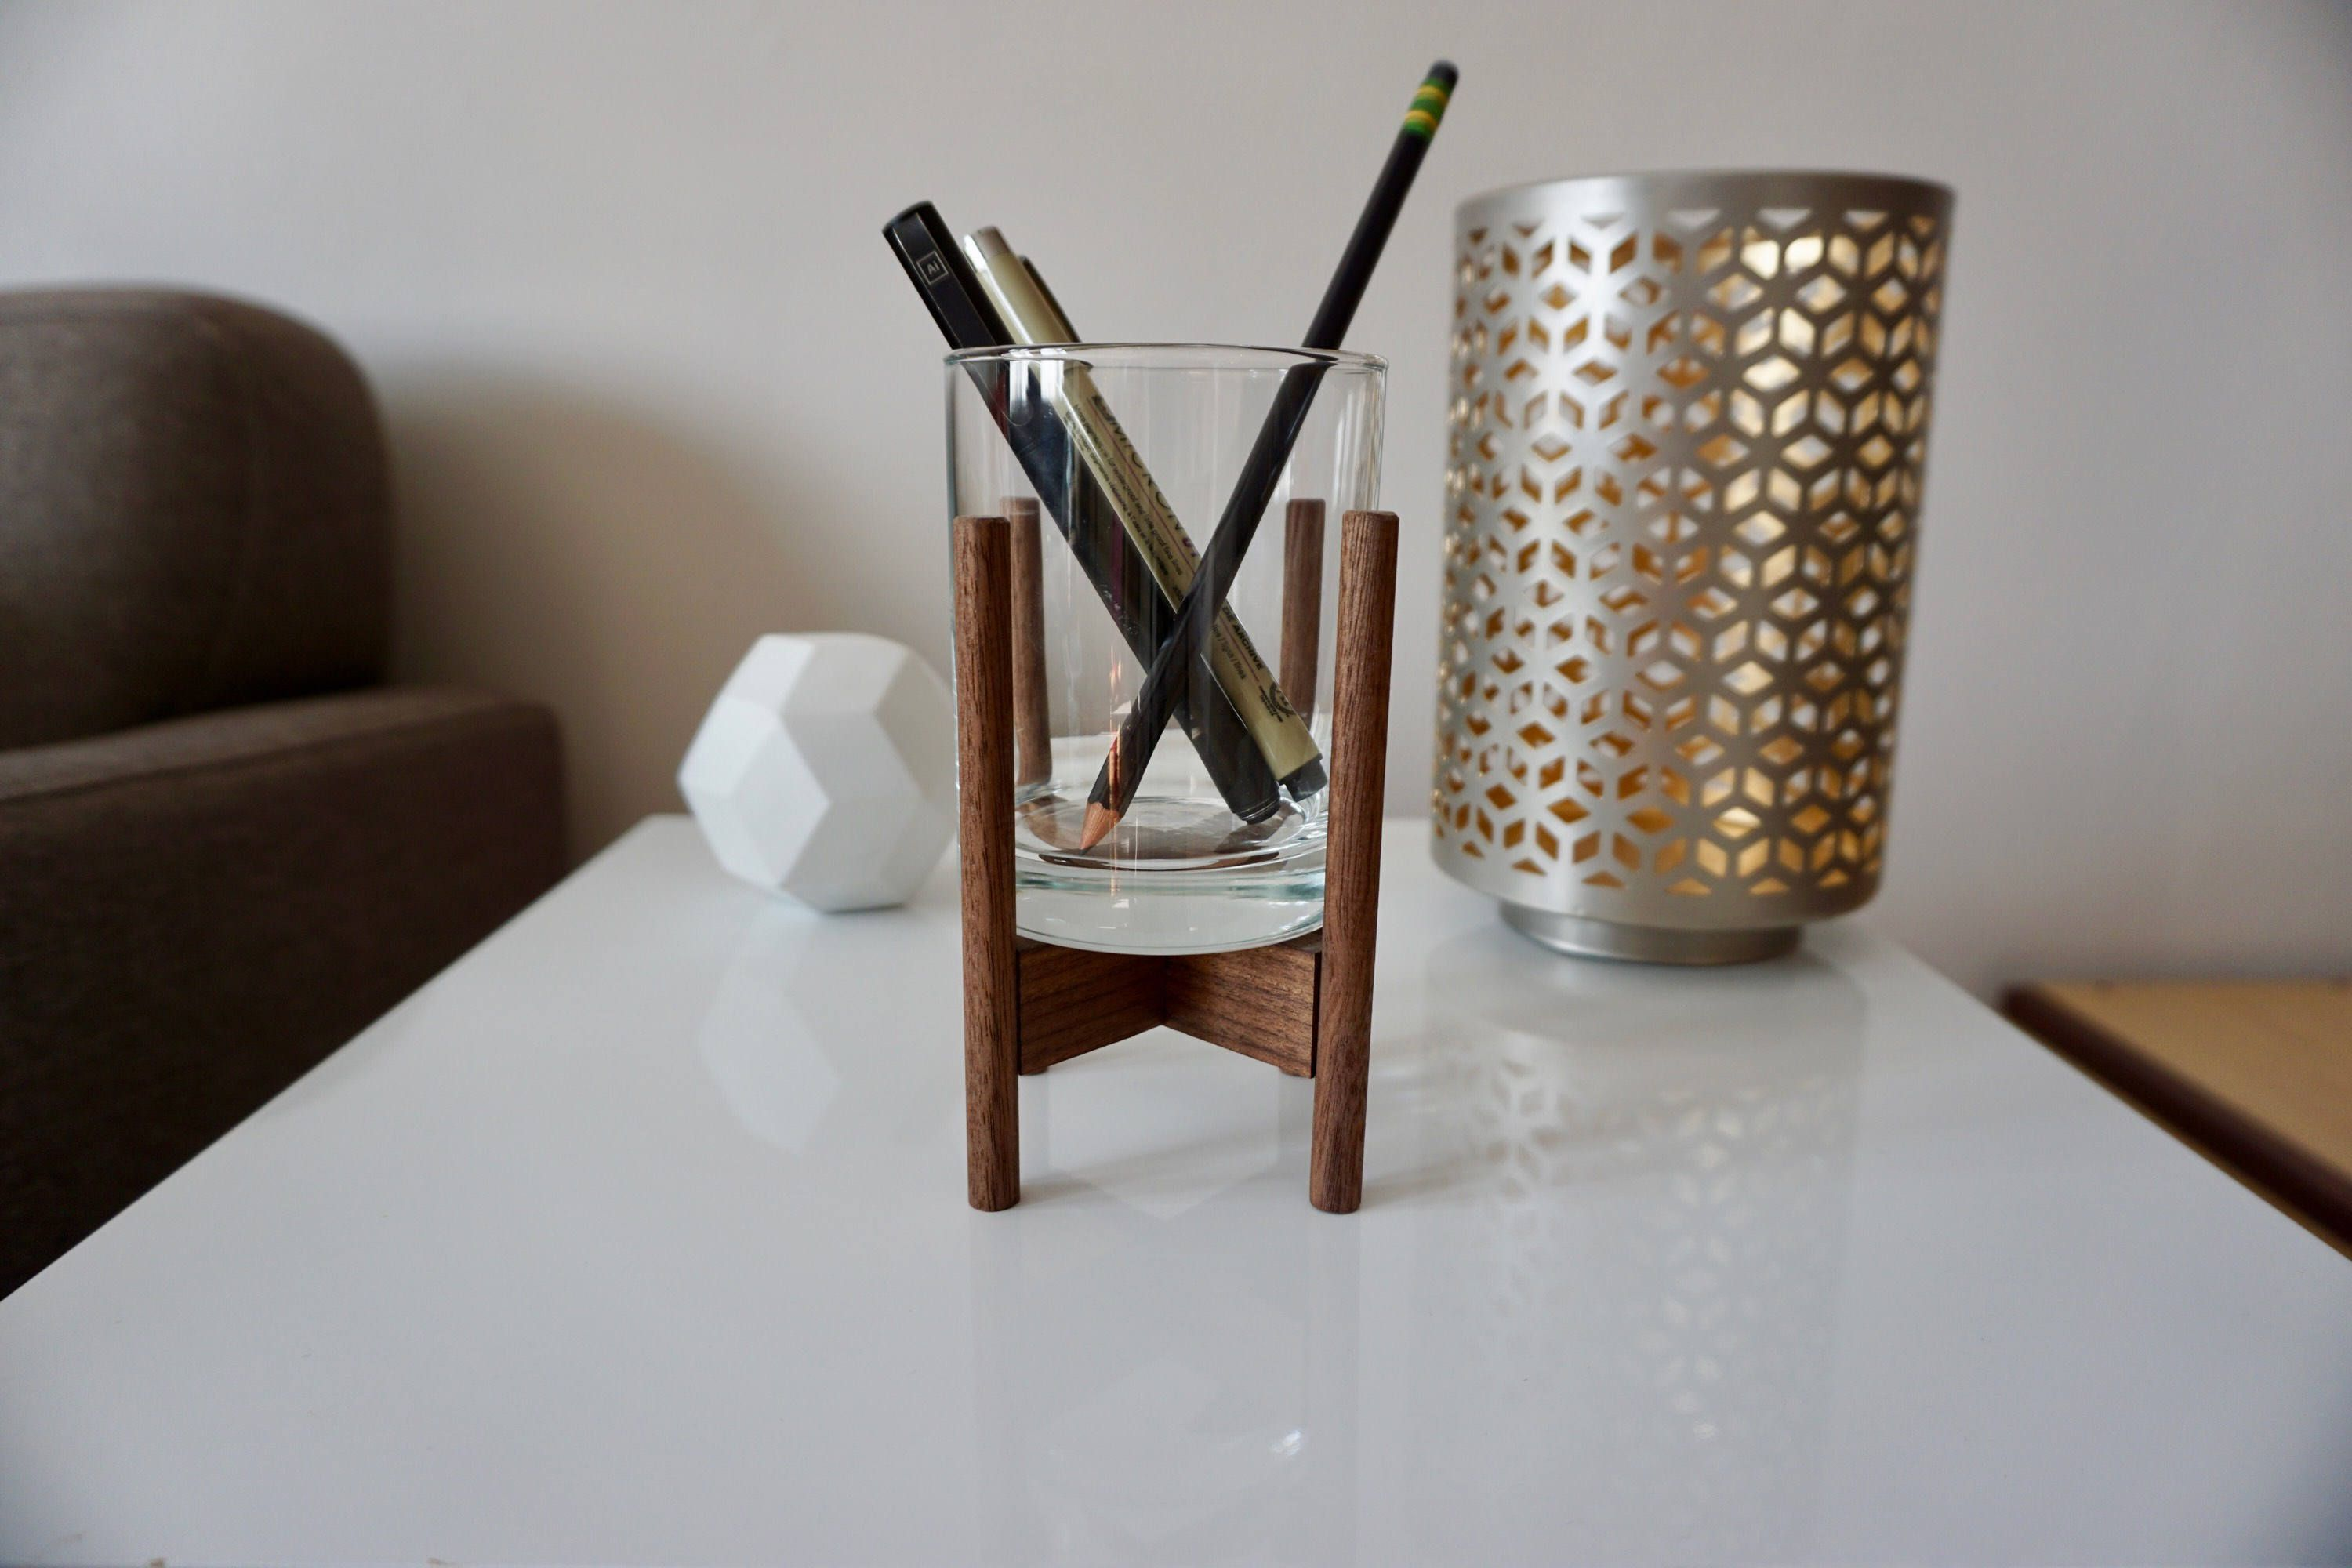 Add this midcentury inspired pencil holder to your desk to give it a